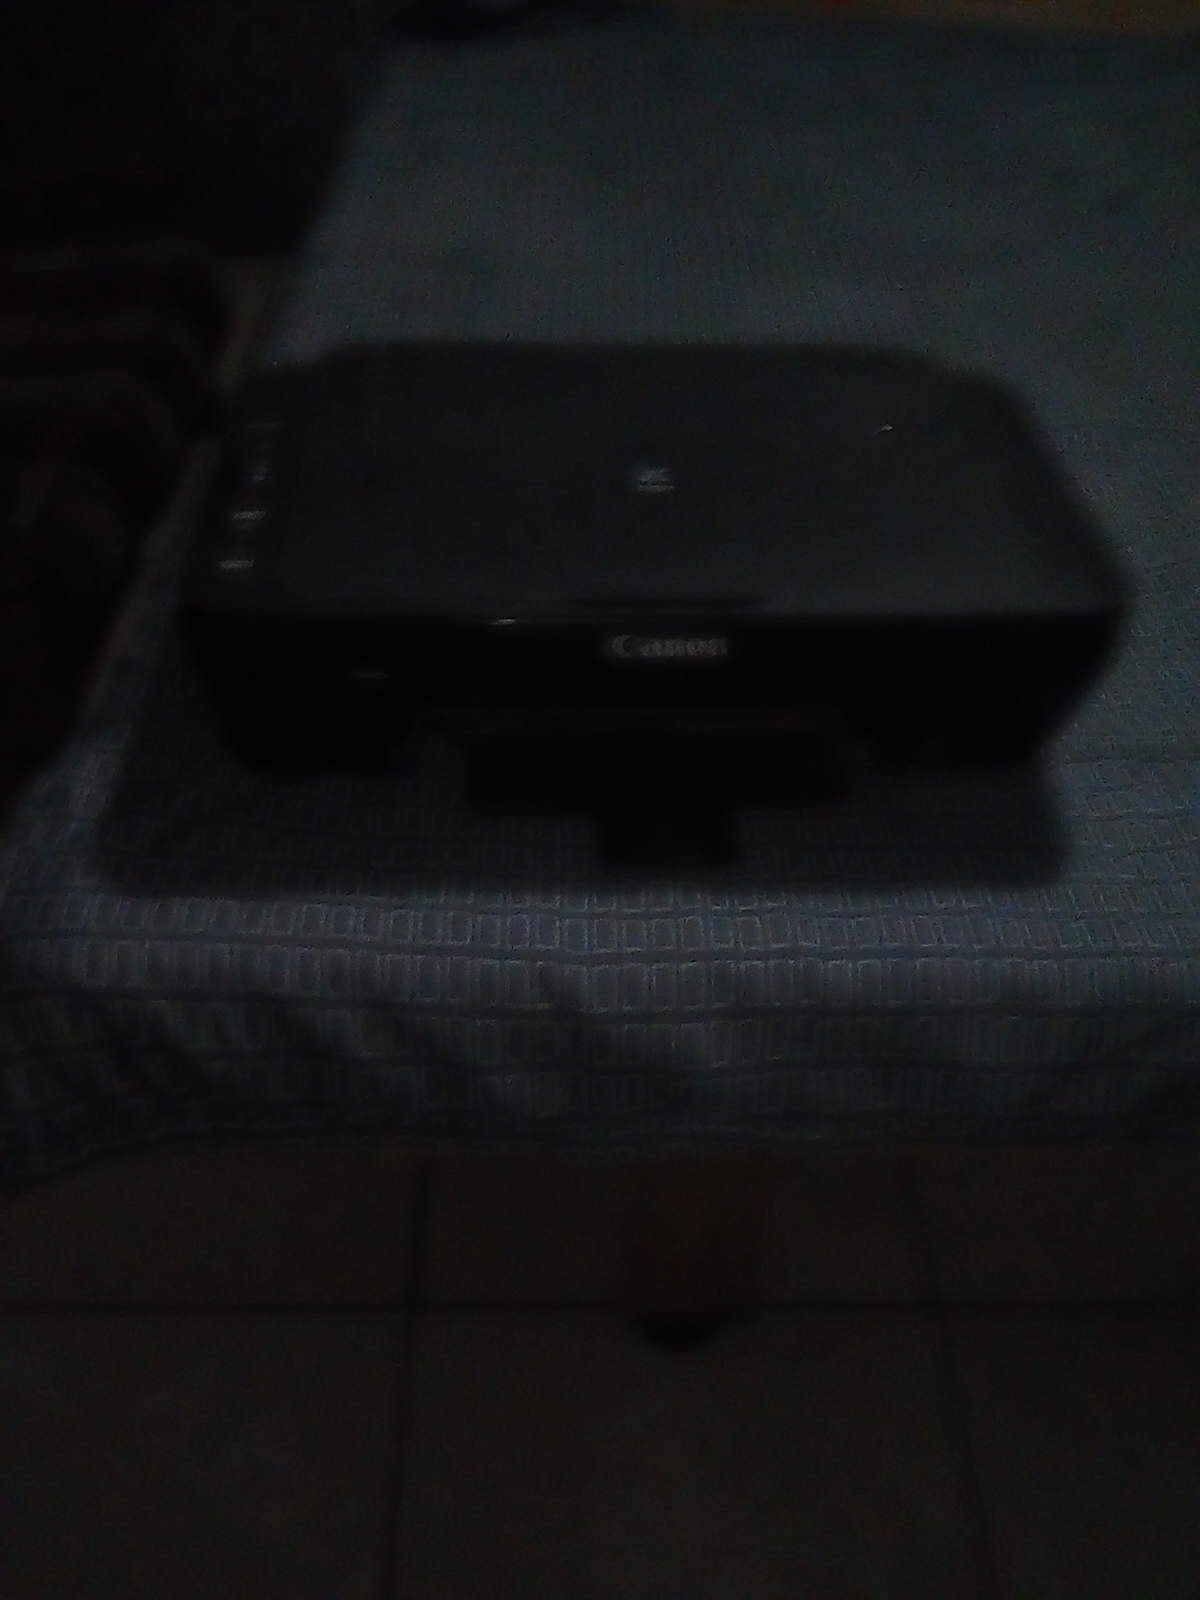 Printer and scanner great condition for sale